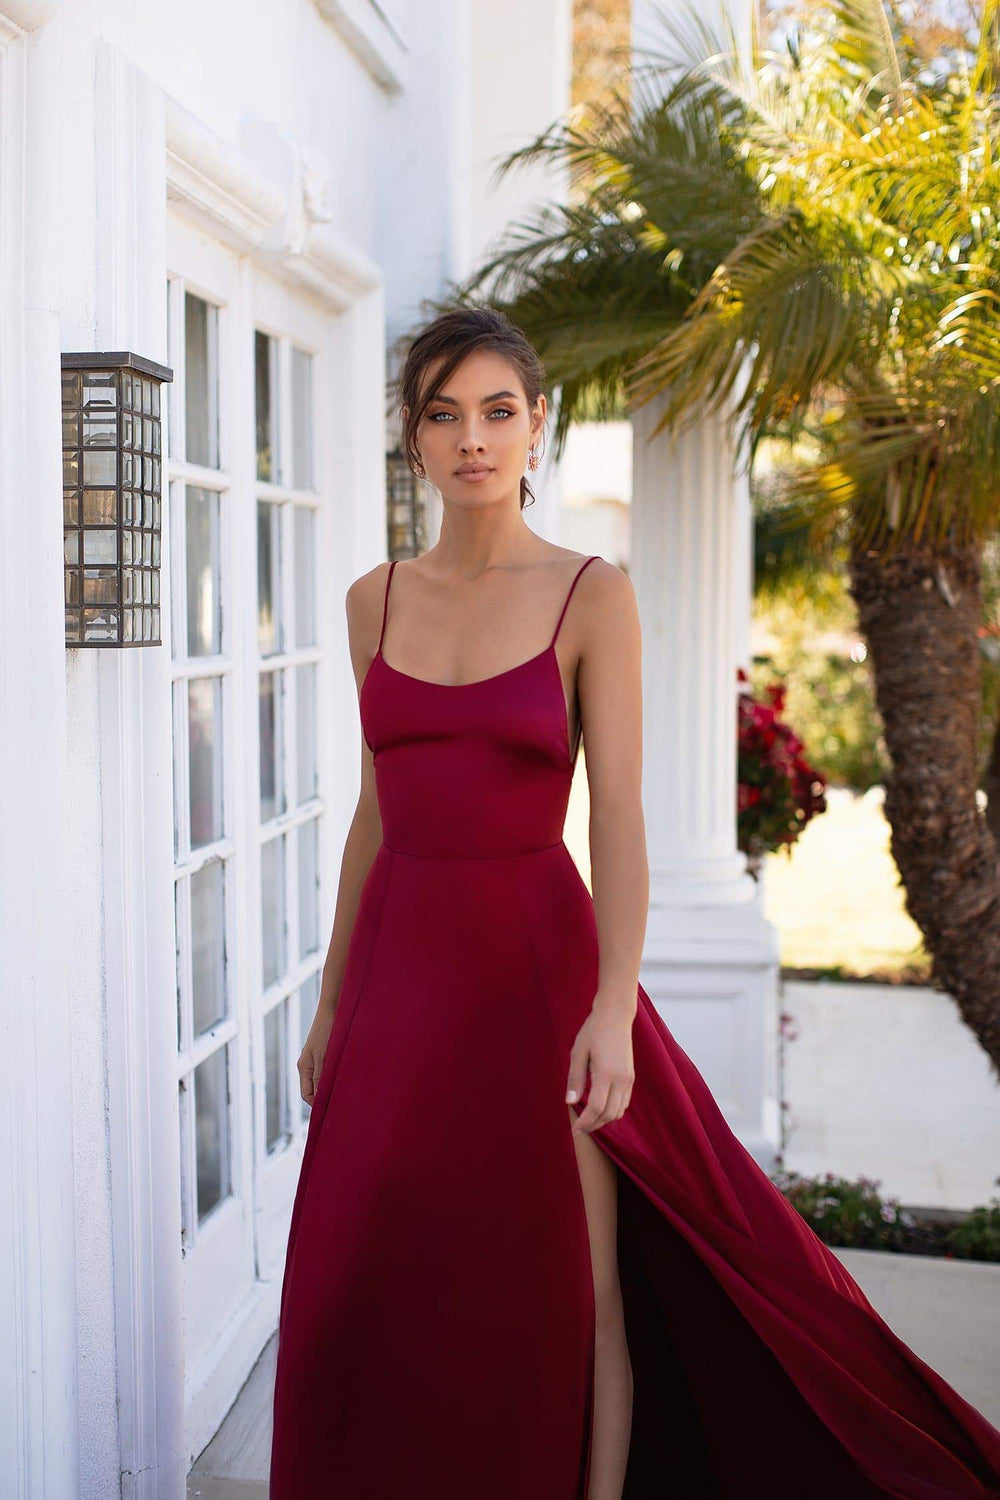 Olivia - Deep Red Satin Gown with Scoop Neck, Slits & Lace-Up Back